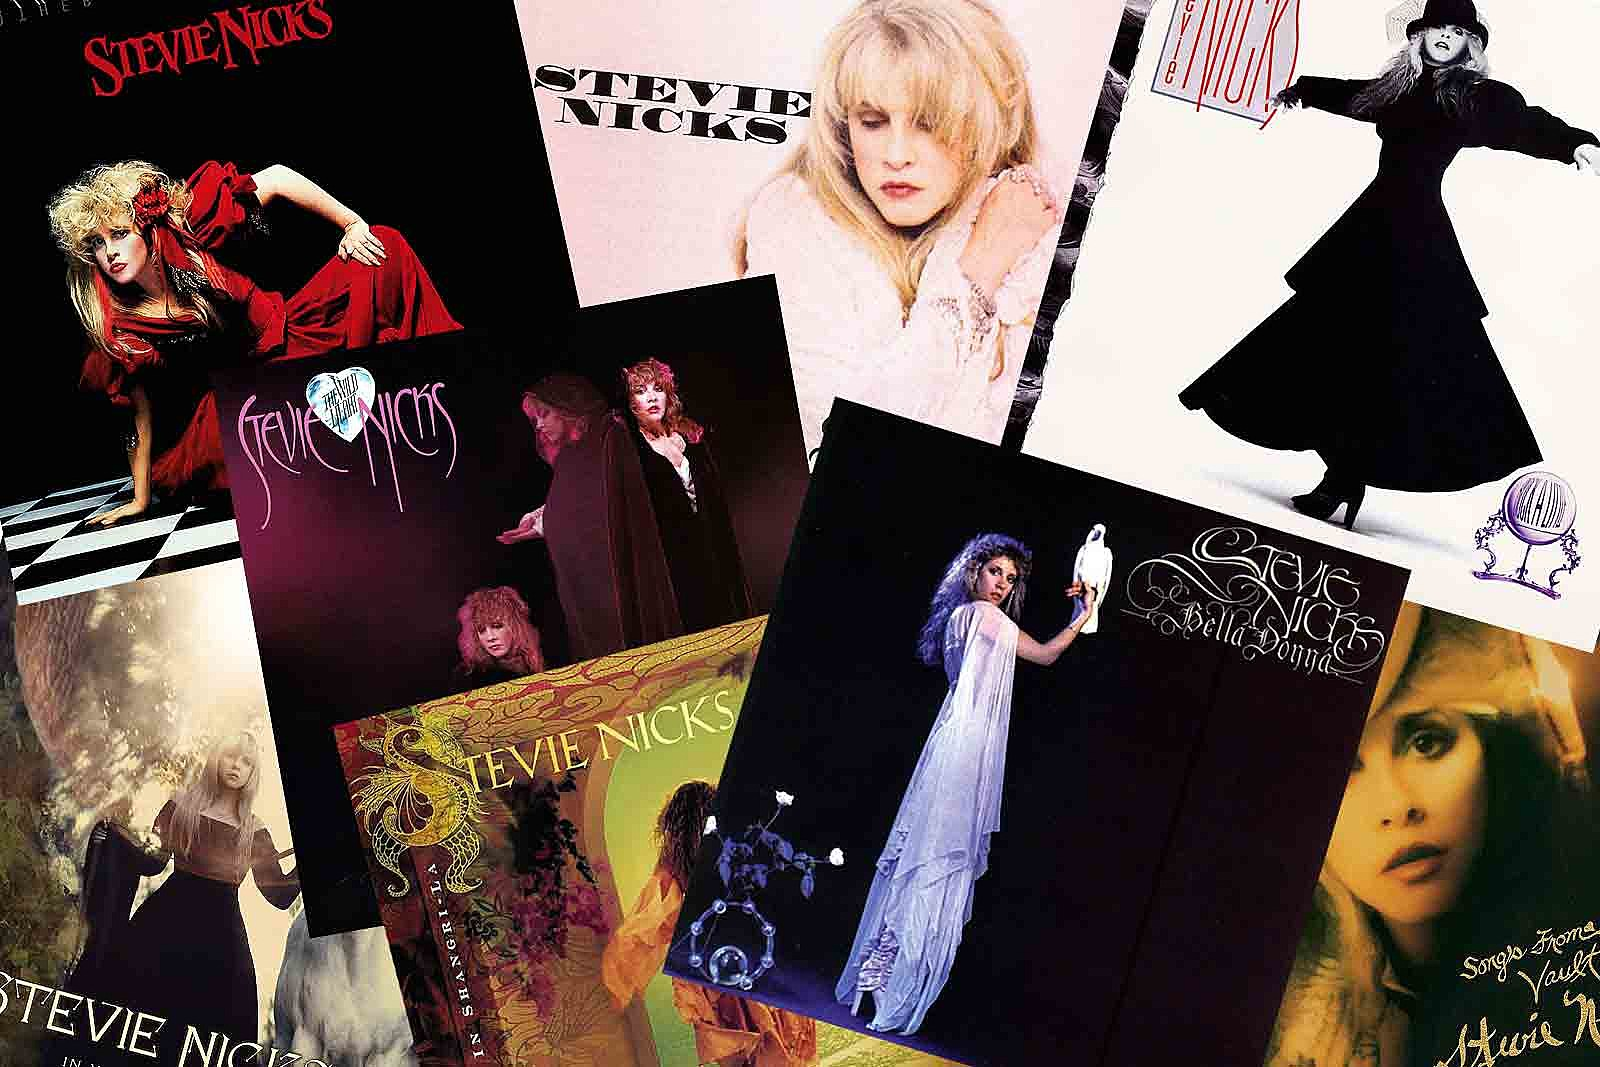 Stevie Nicks Solo Albums Ranked Worst to Best